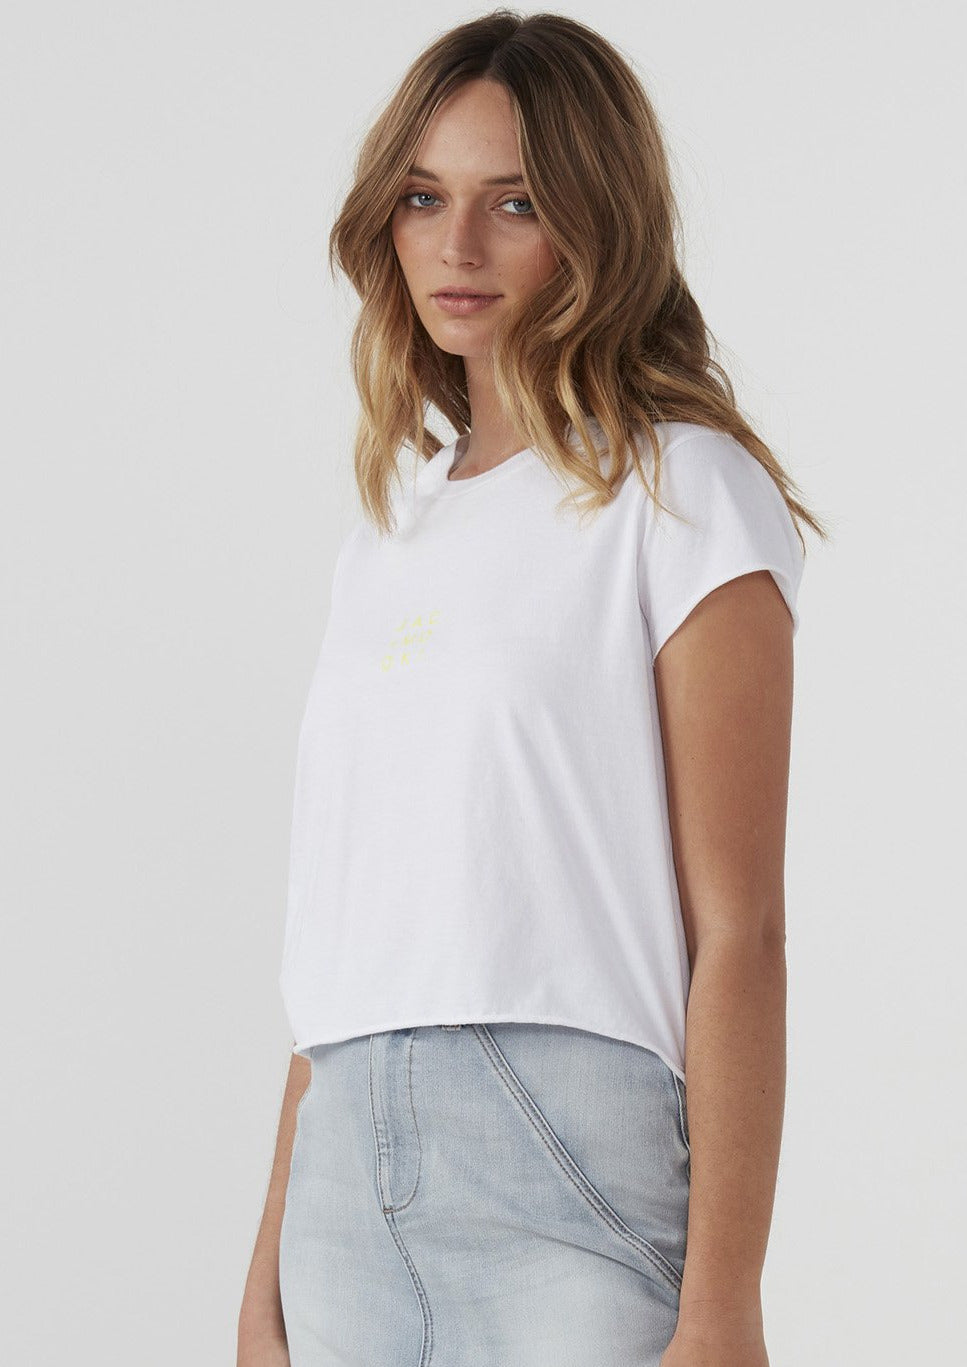 The Lottie Tee is designed with a cropped hem and is crafted from 100% premium organic cotton jersey. A fun and fresh way to update your weekday to weekend style. Pair with your fave jeans or high waisted black tights and white sneakers.